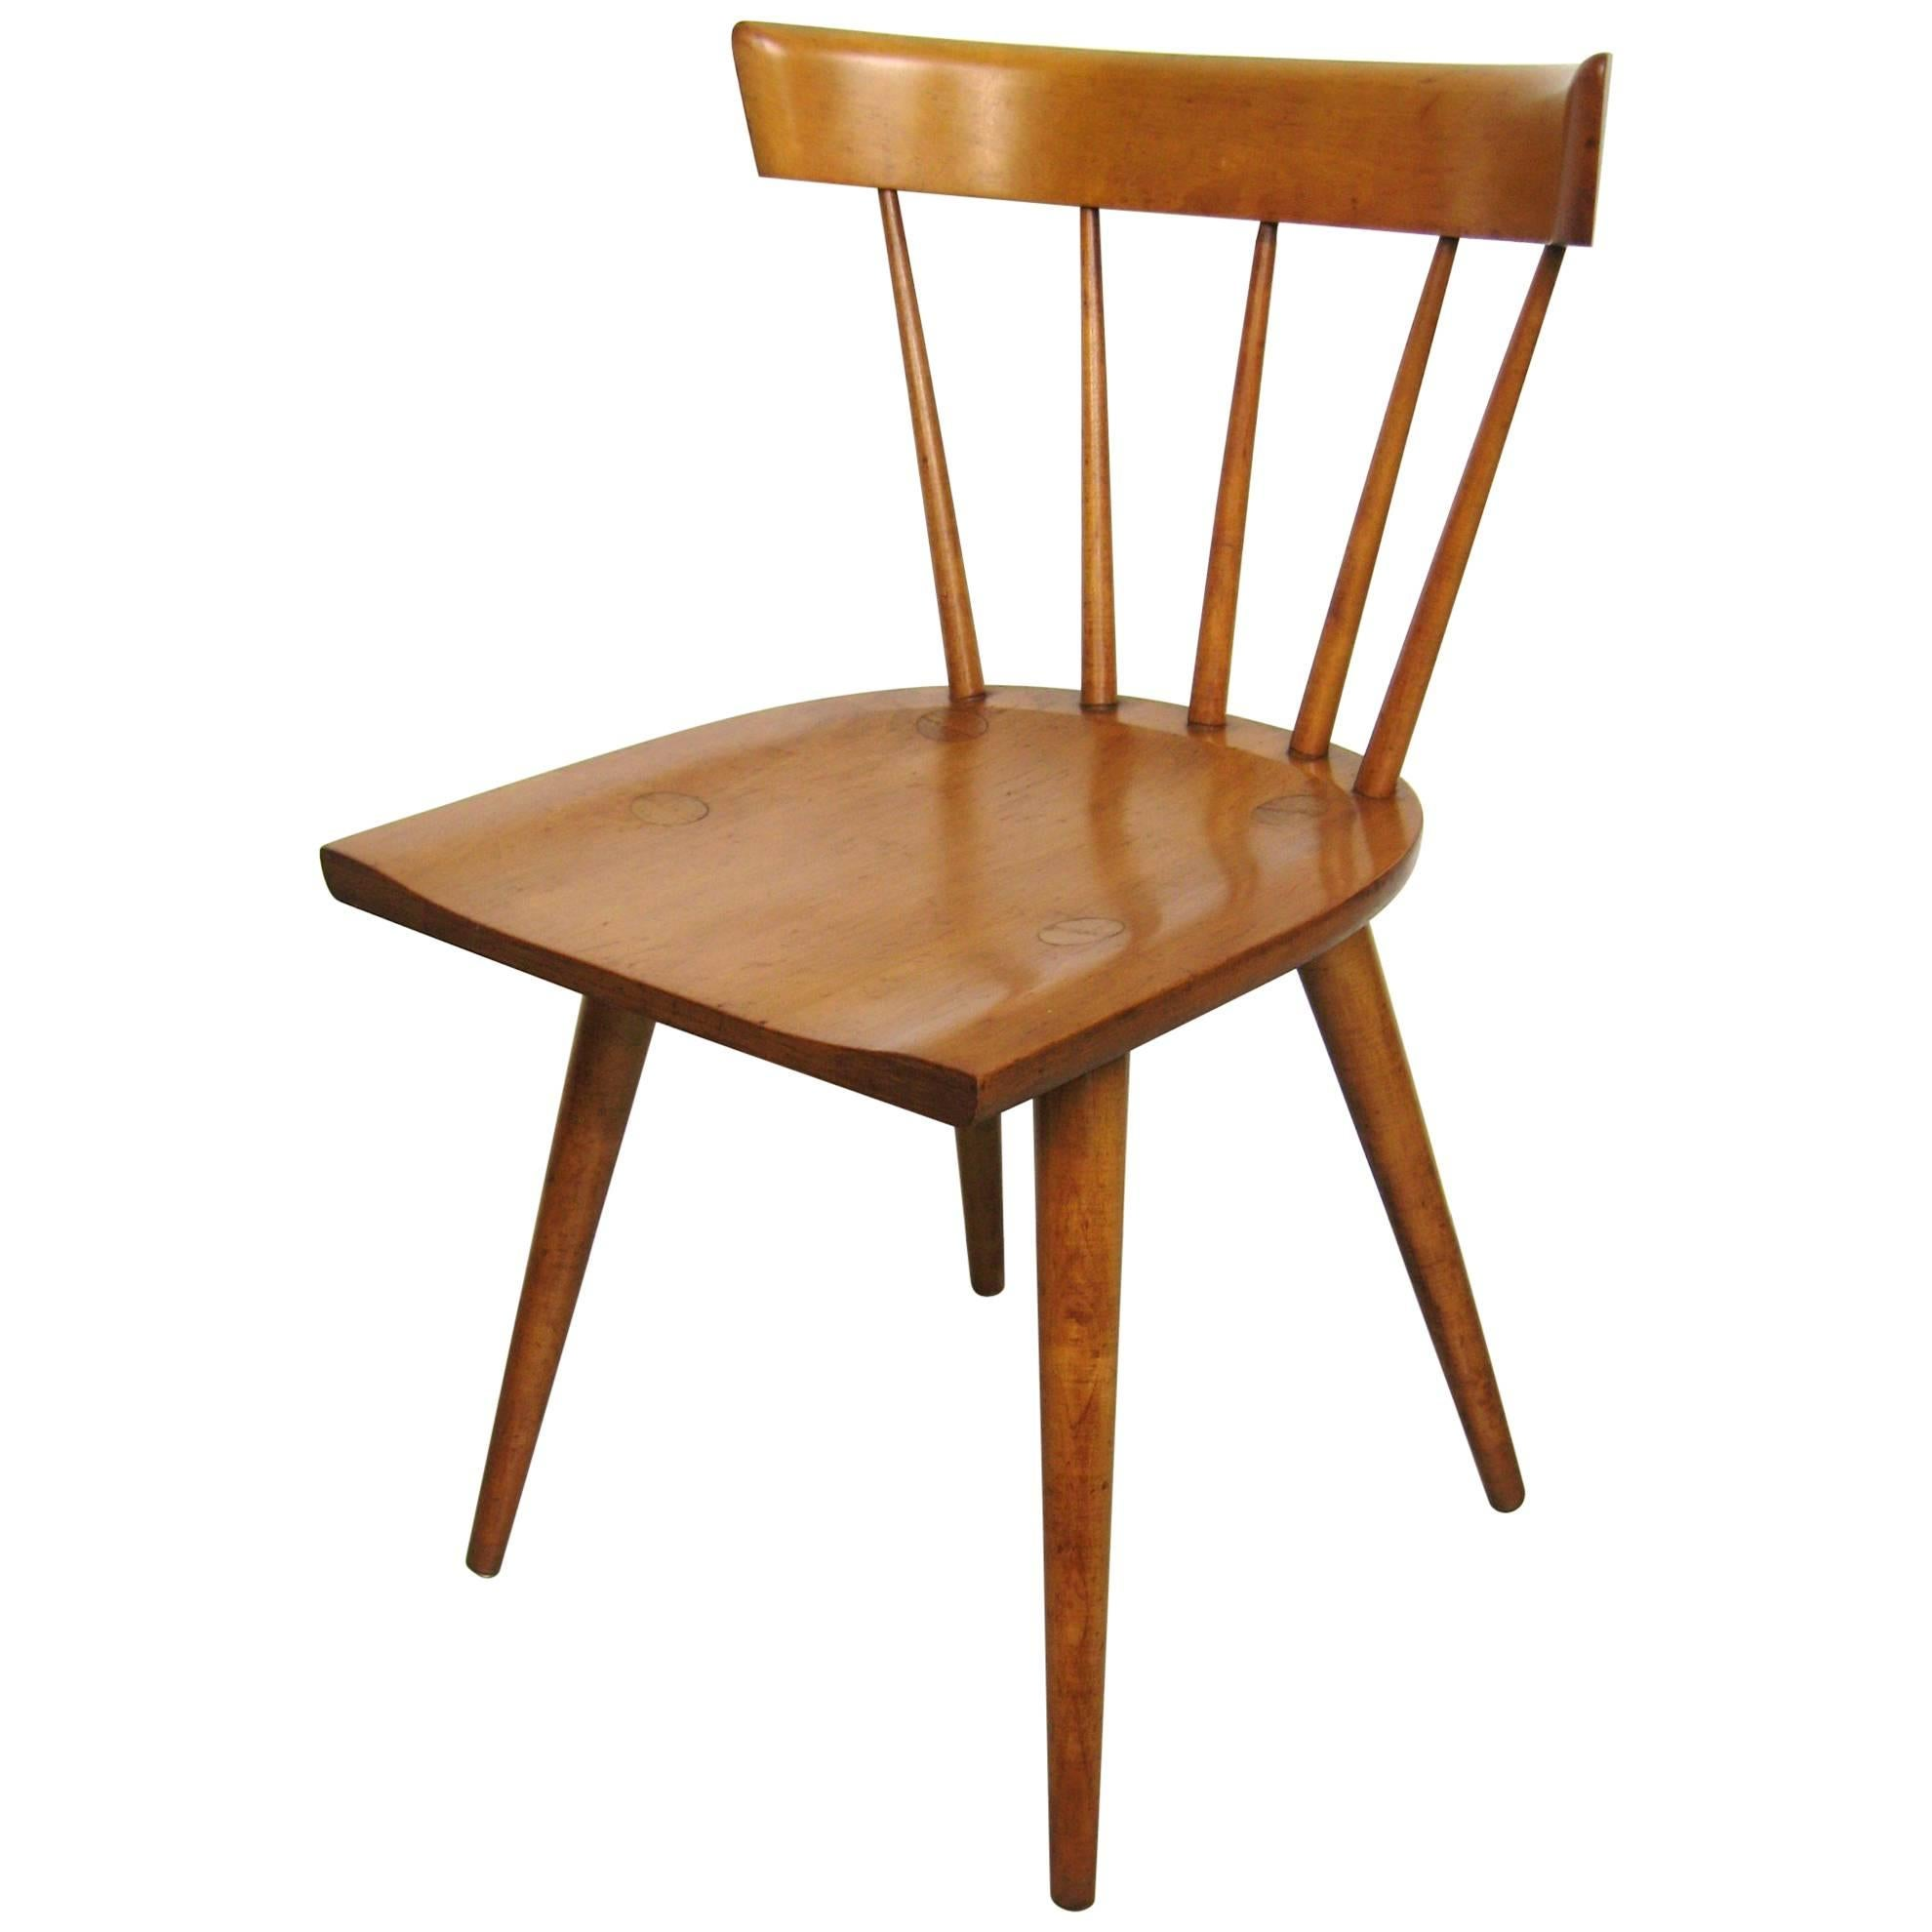 Paul McCobb Desk Dining Chair for Planner Group Winchendon Furniture